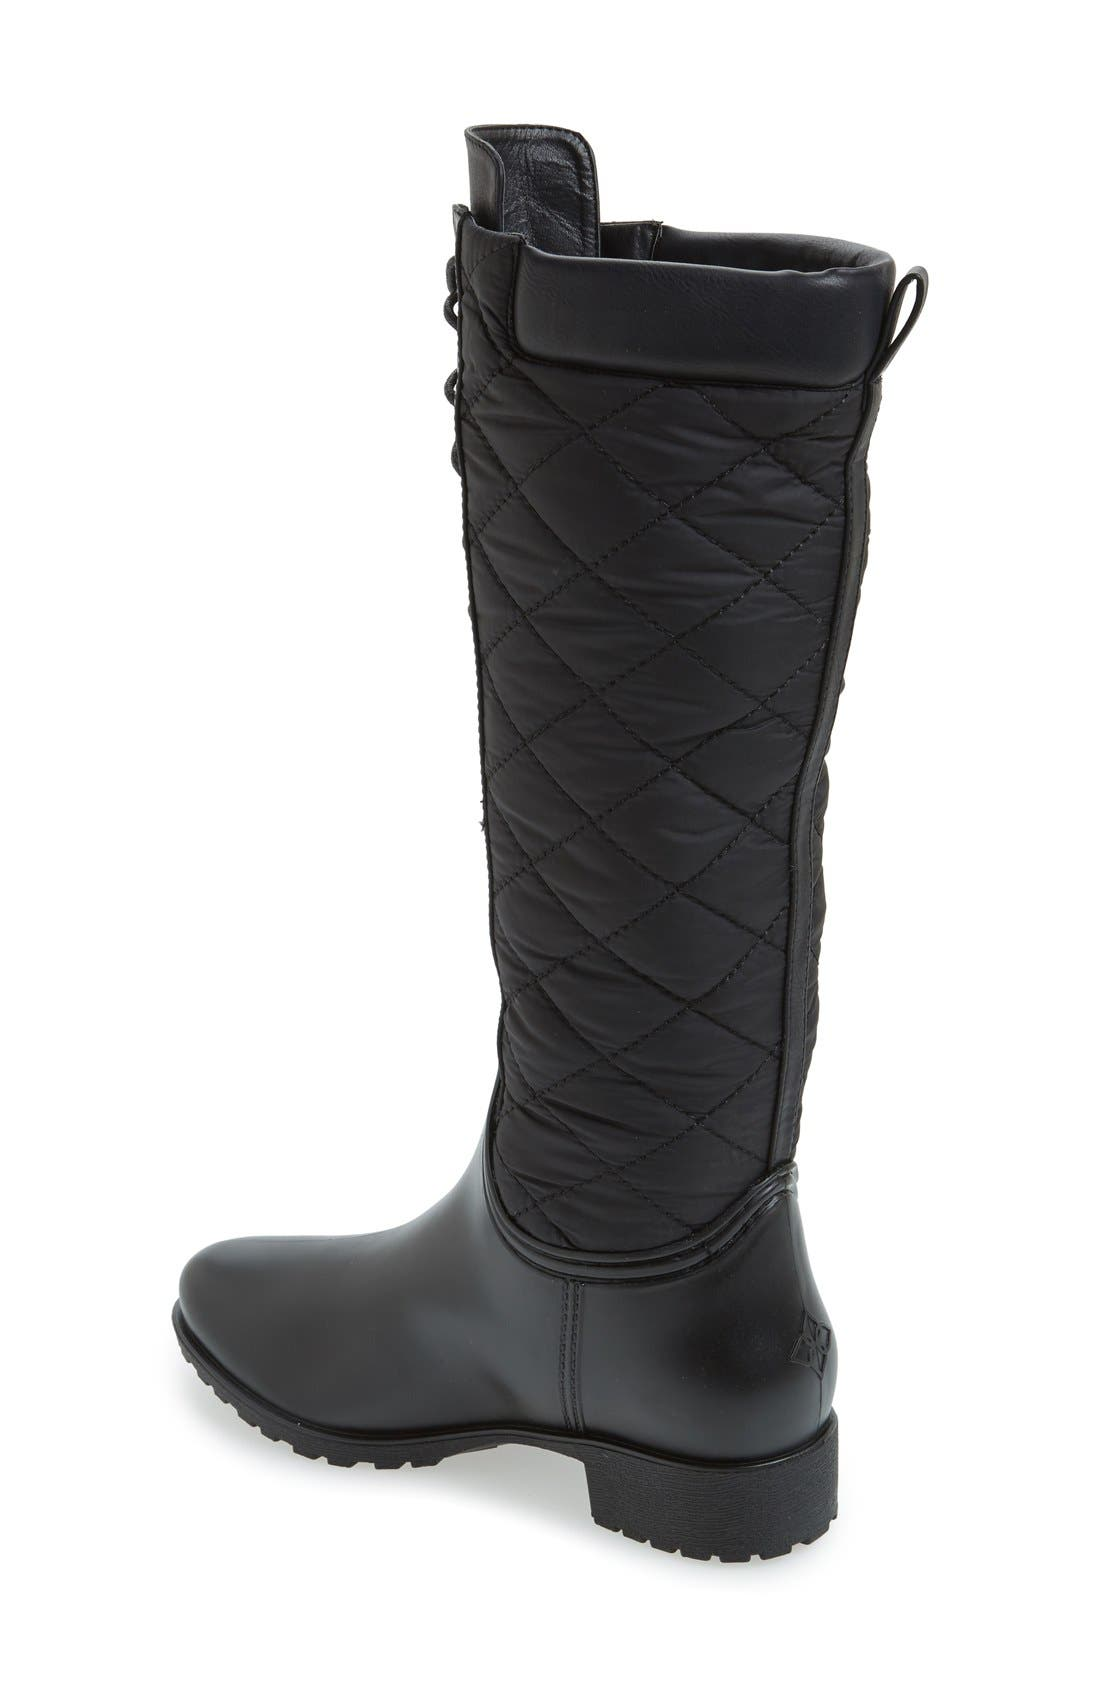 Tofino Quilted Tall Waterproof Rain Boot,                             Alternate thumbnail 2, color,                             001